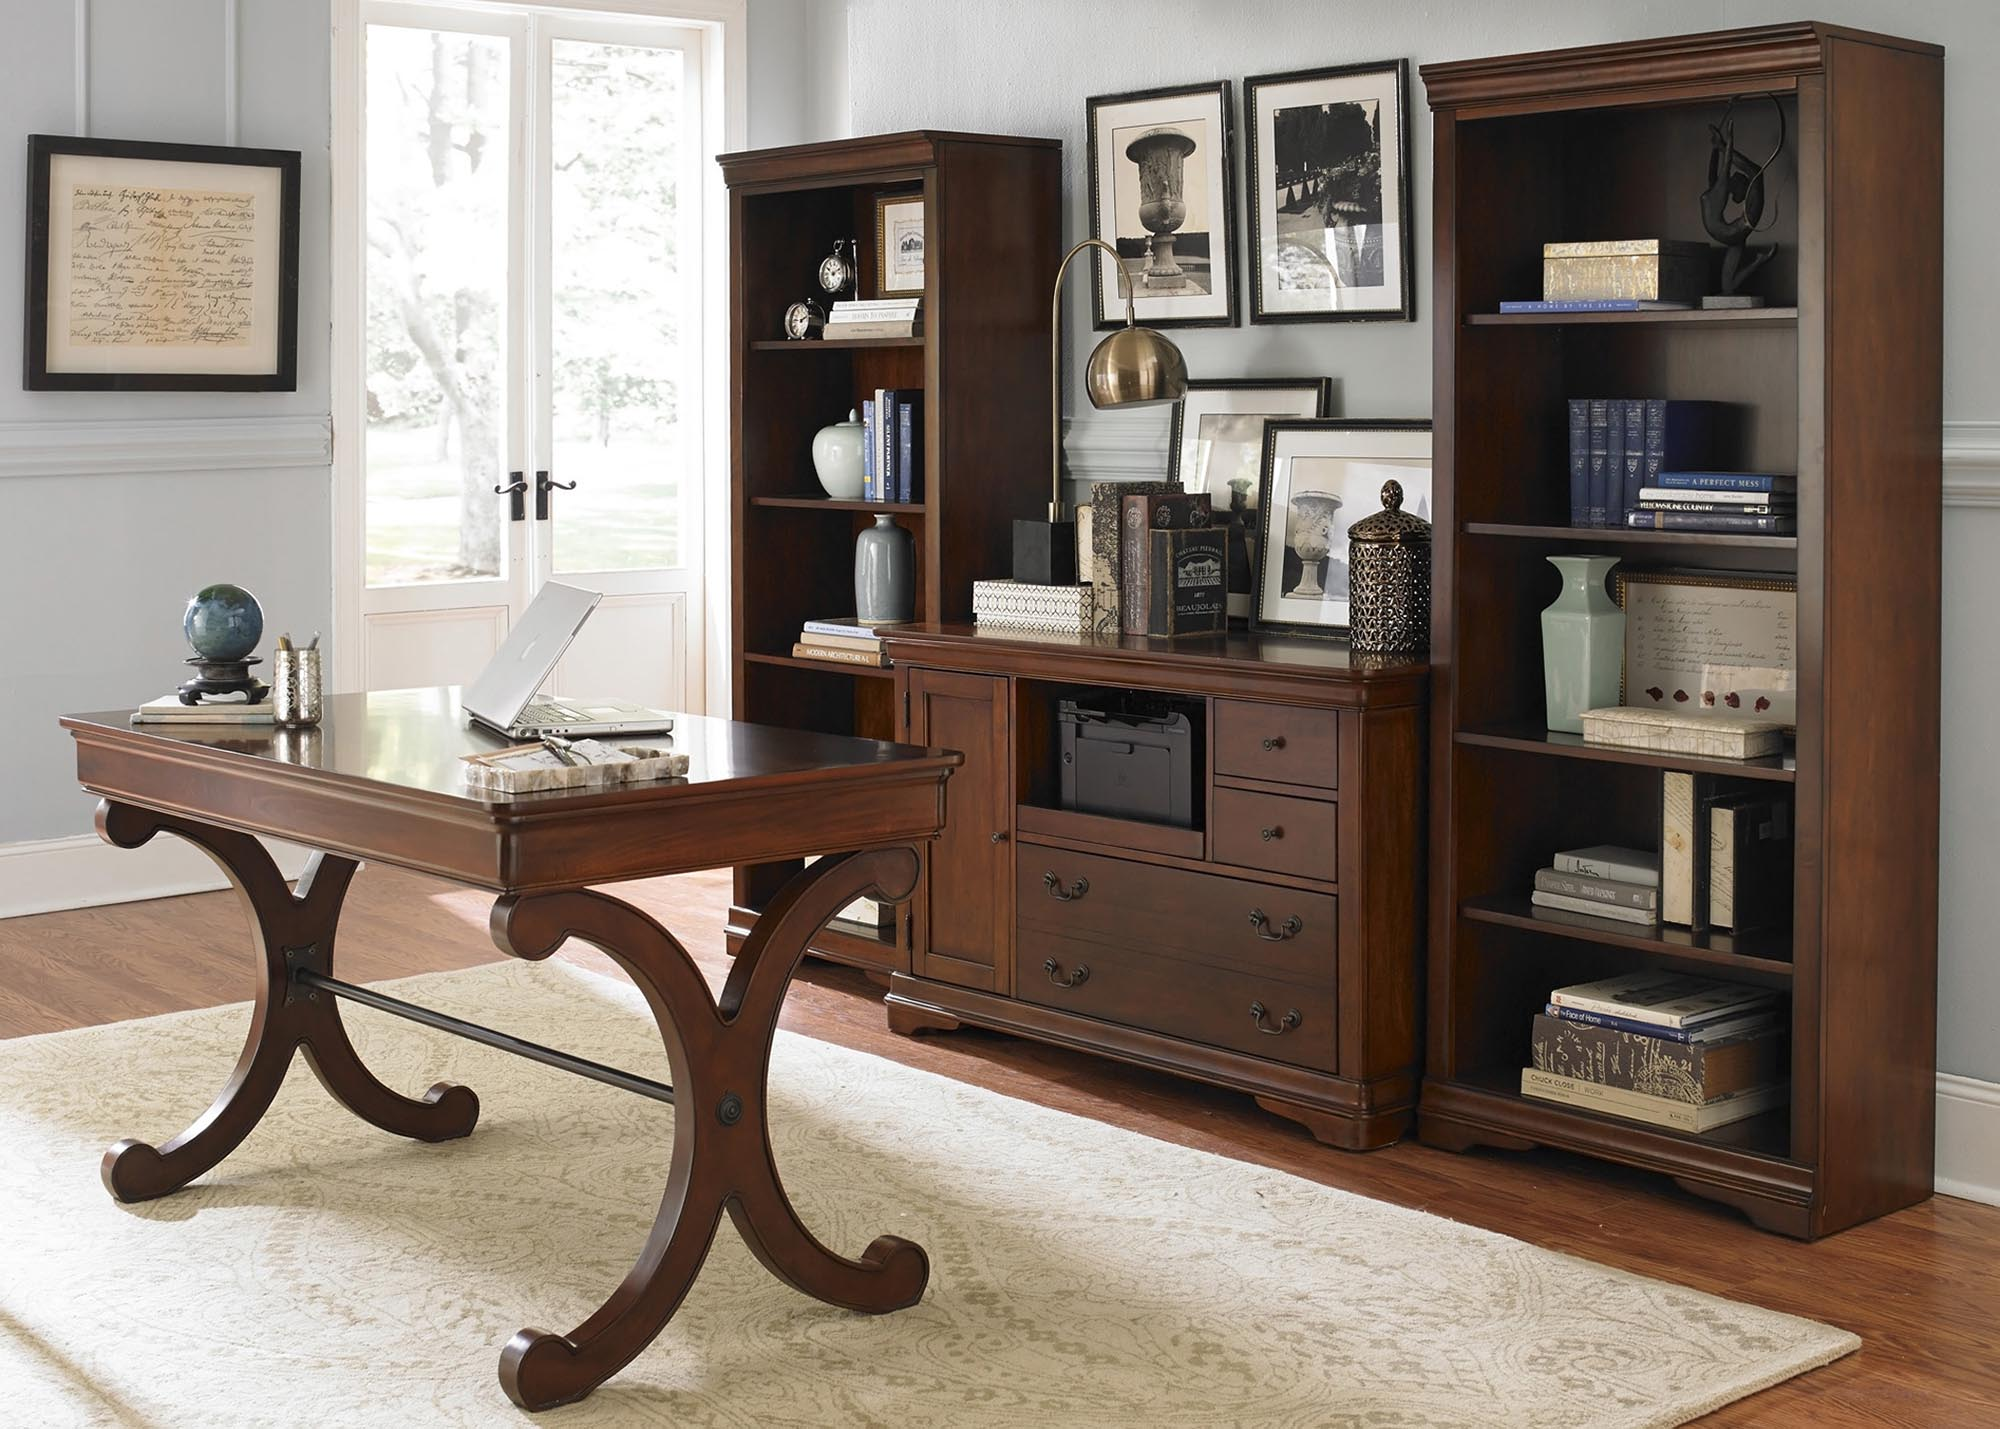 Clifton Furniture Quality Furniture